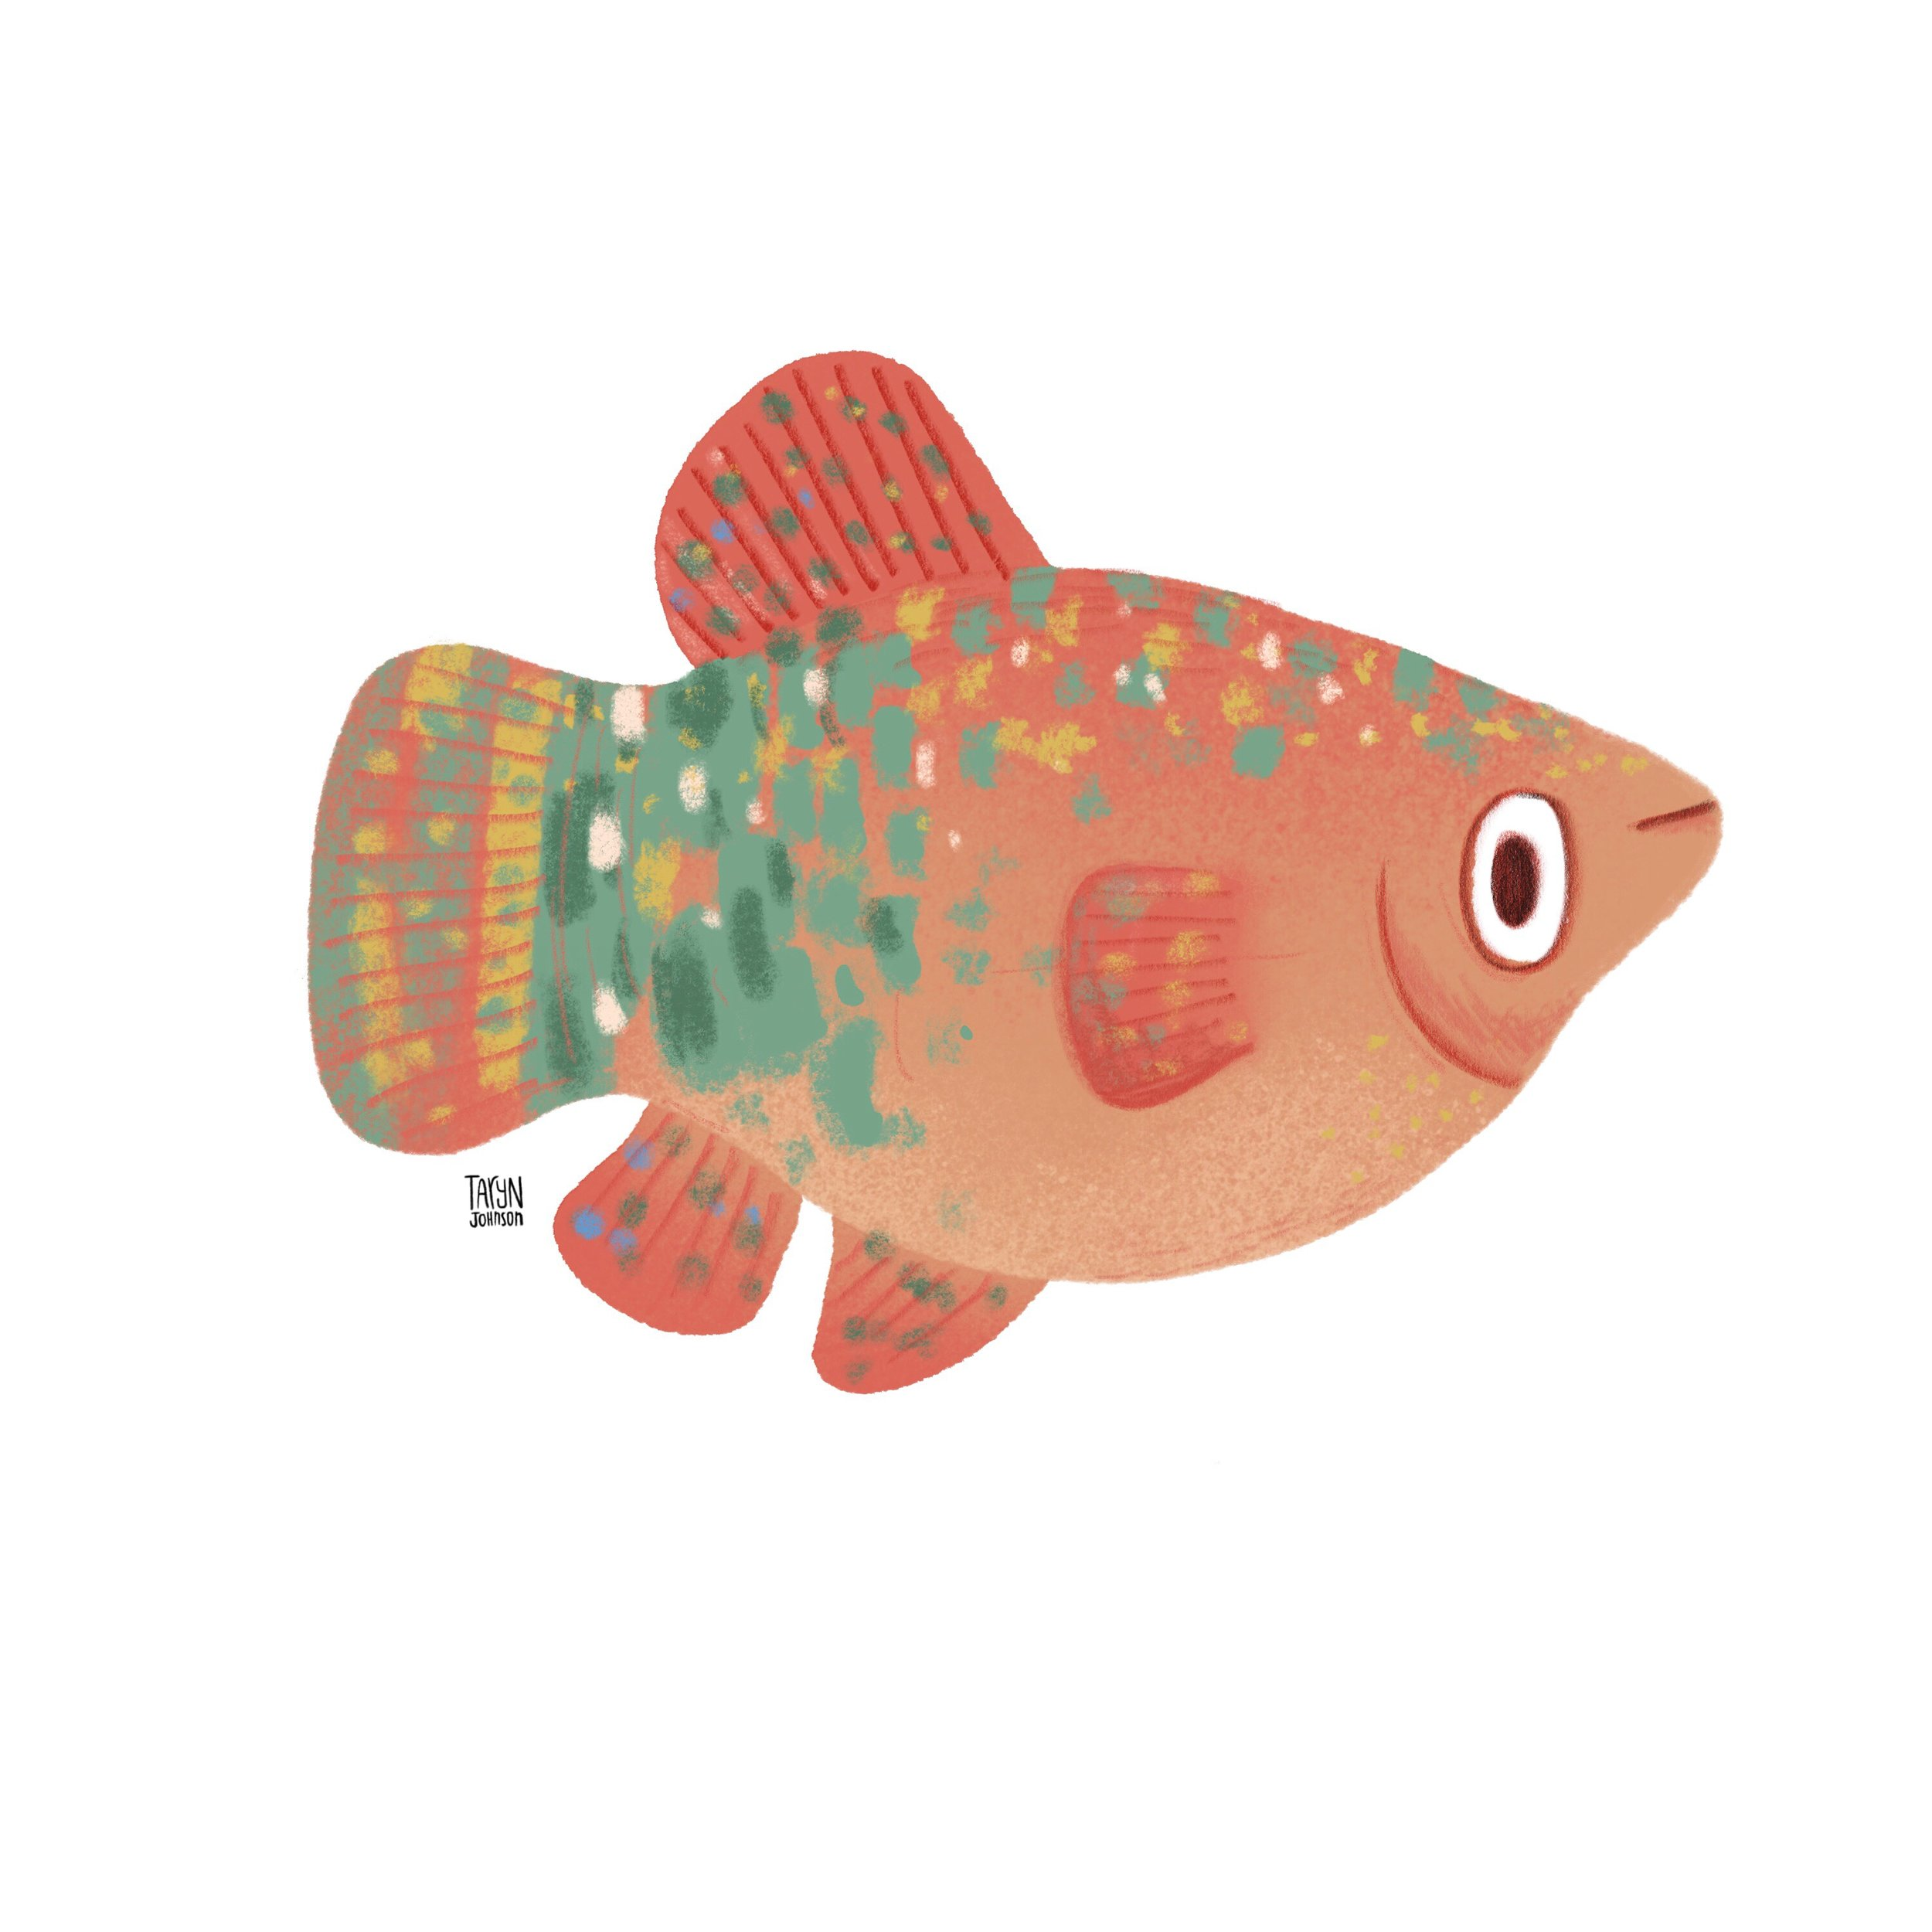 6/100 a speckled fish